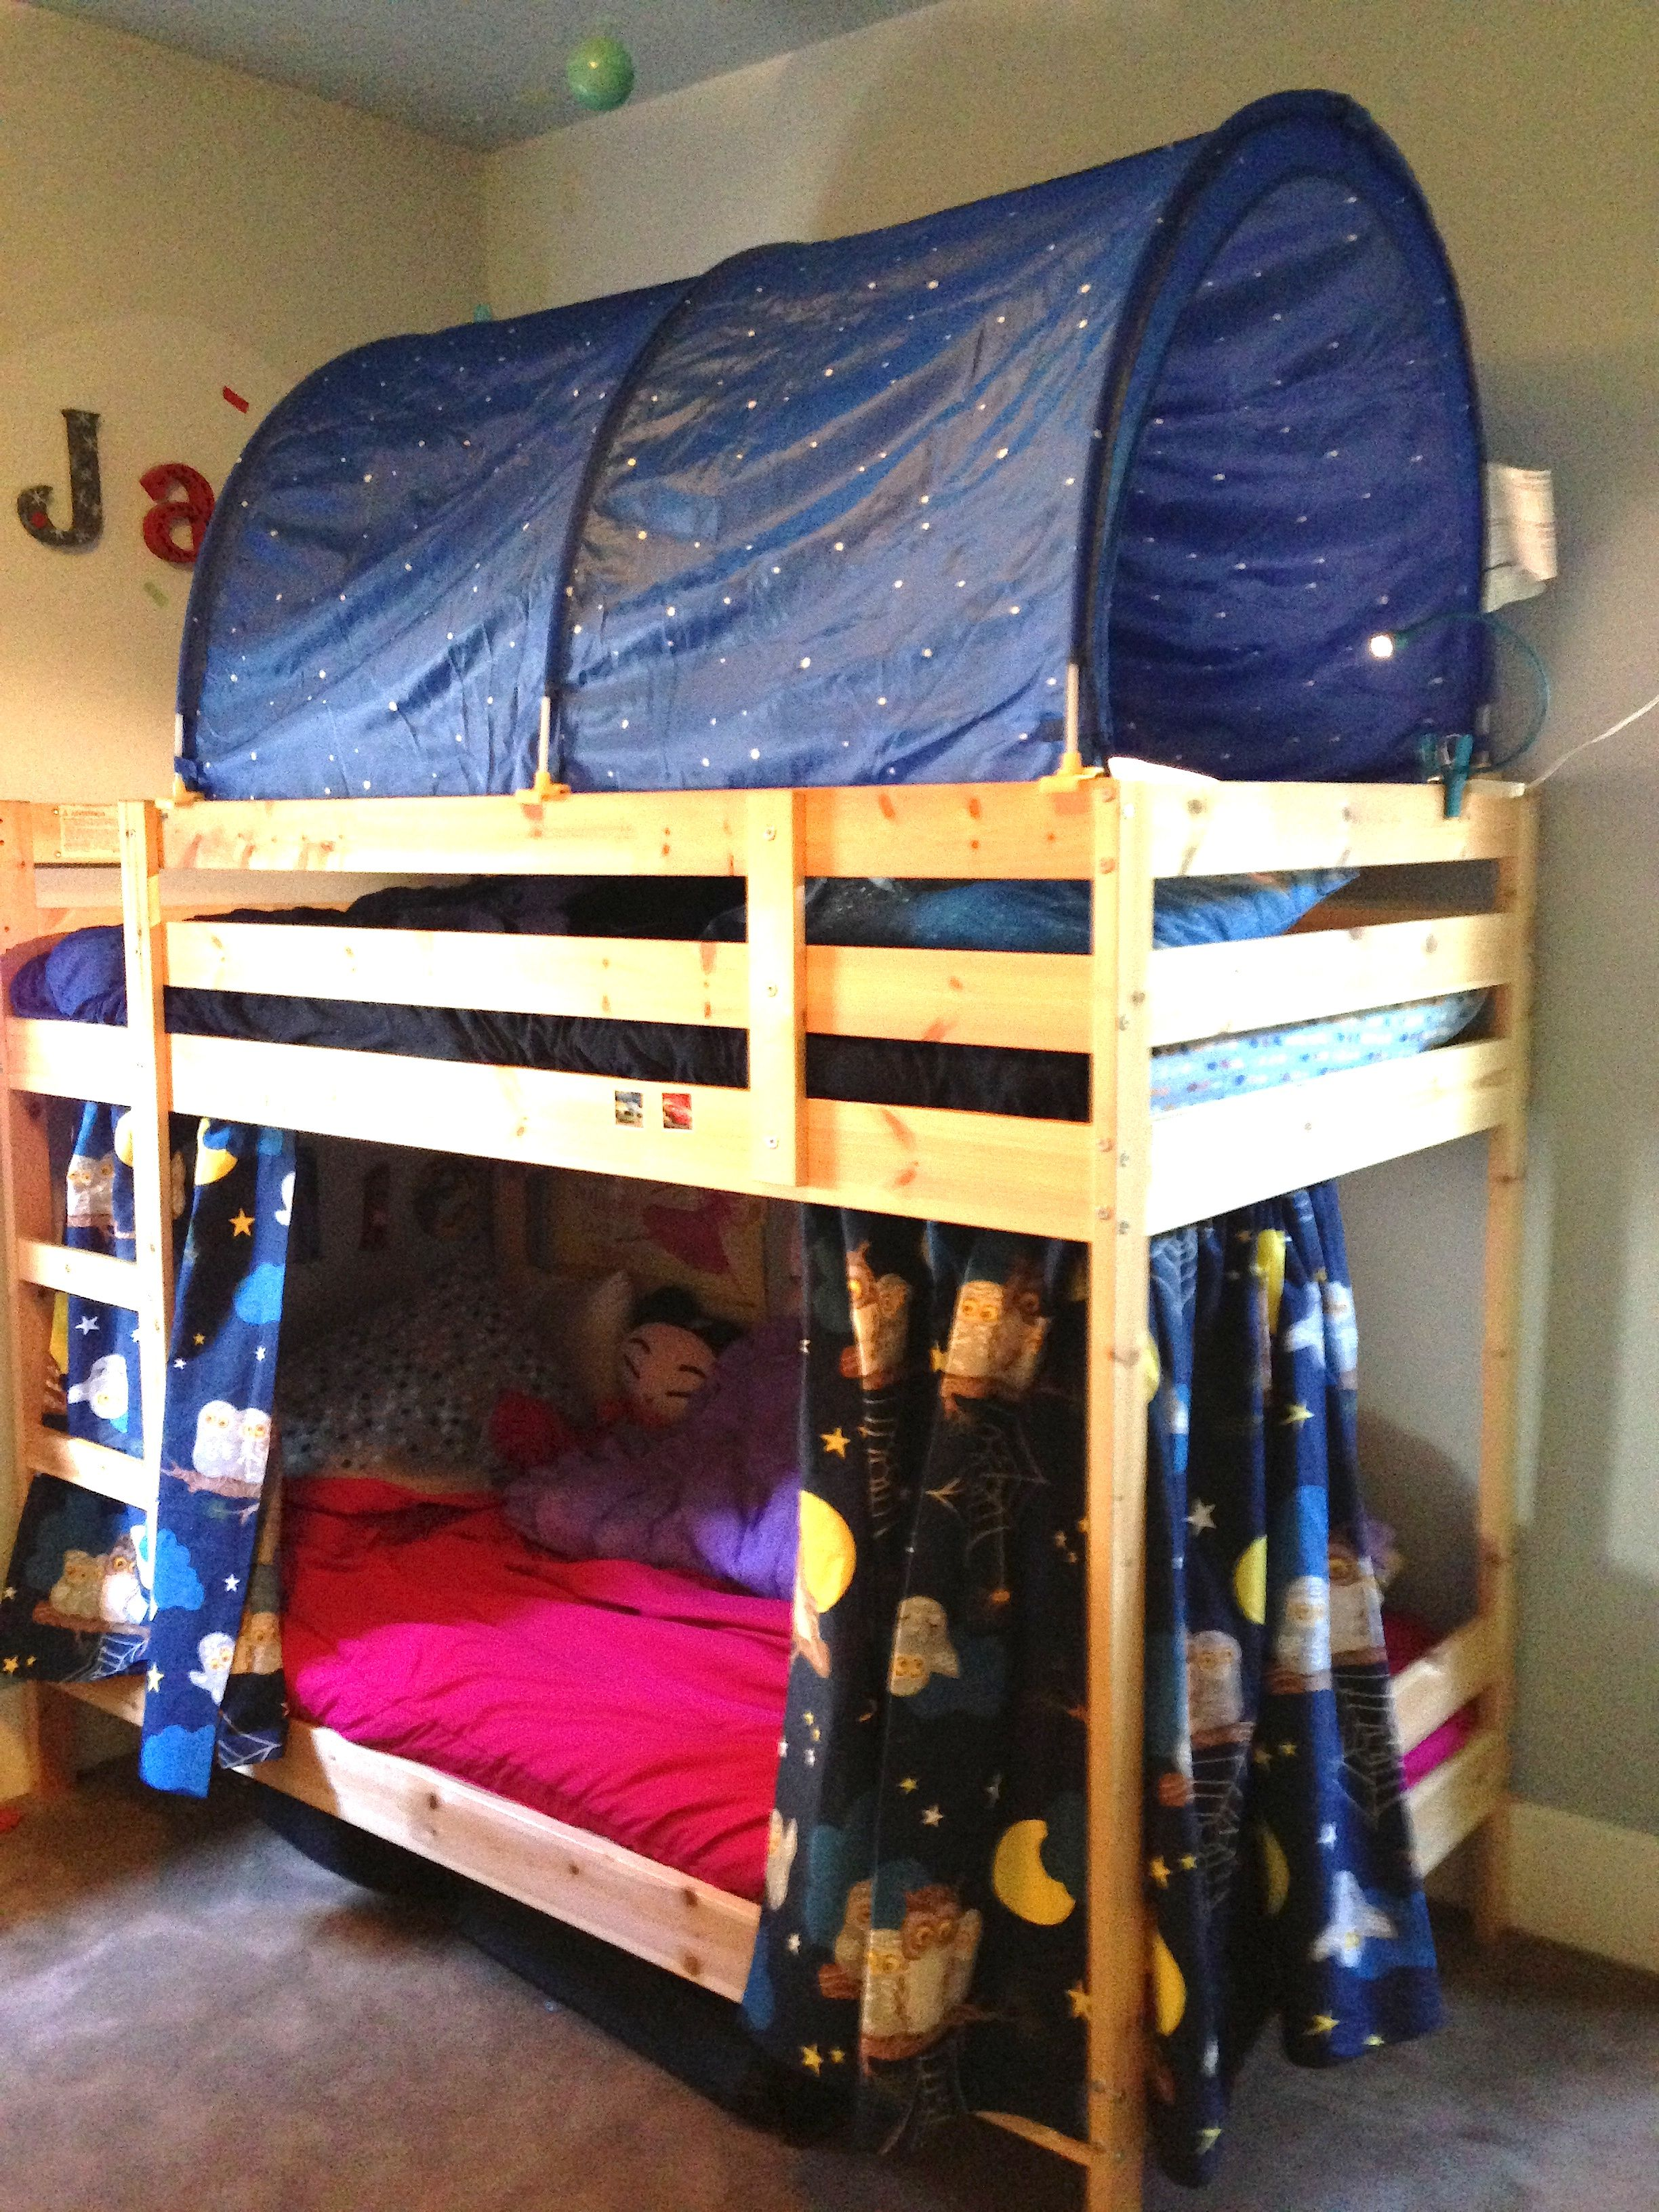 Bunk Bed Curtains On Wire Curtain Hangers Diy Home Bunk Beds